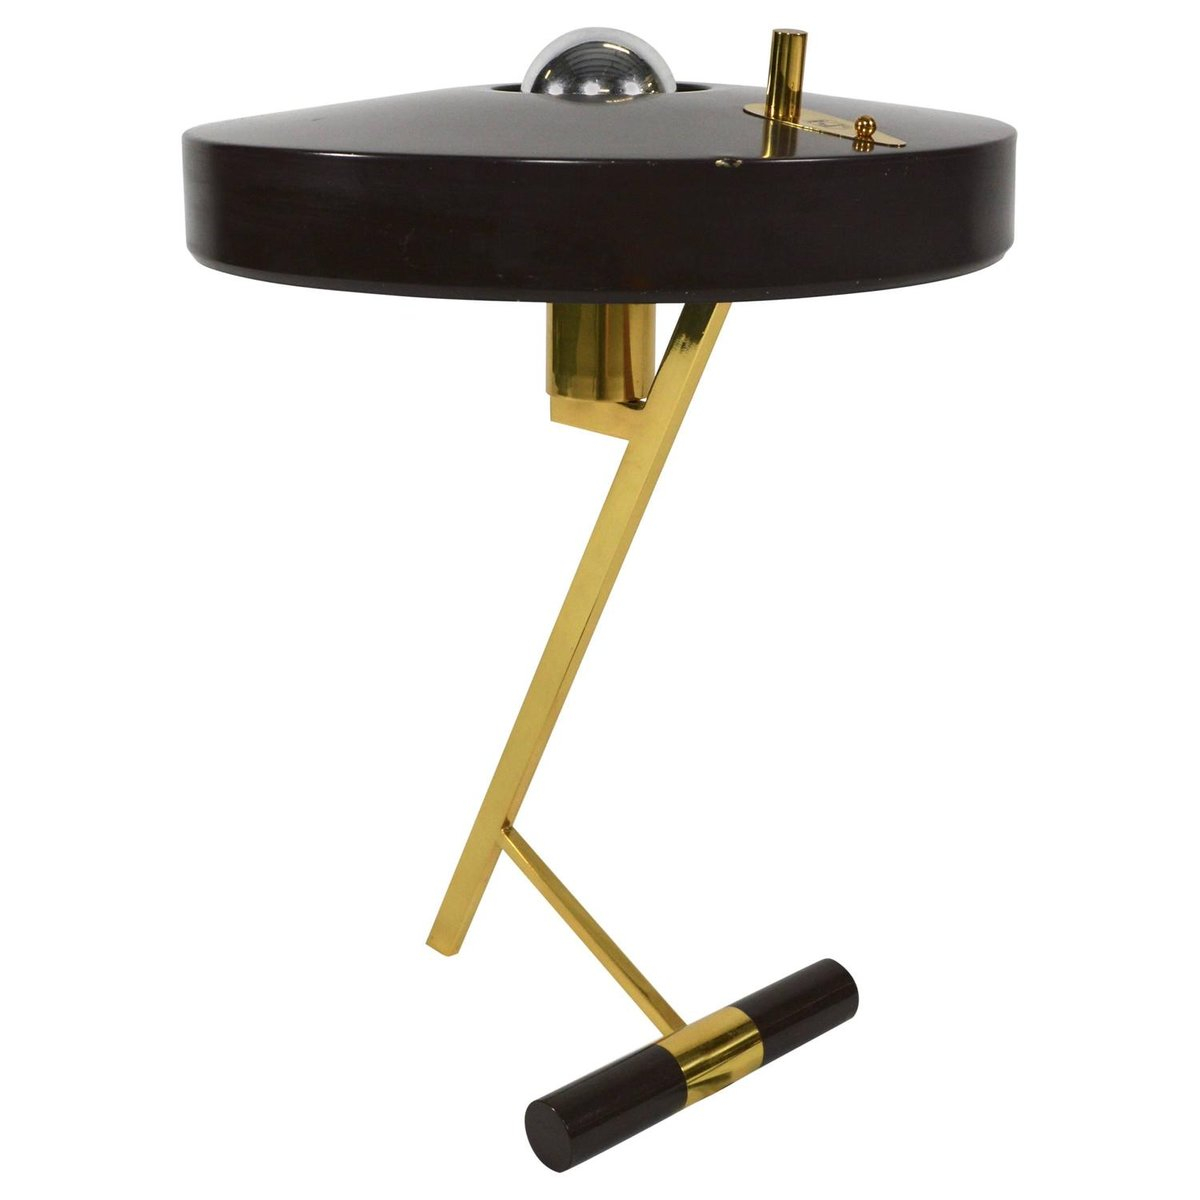 Dutch z shaped table lamp by louis kalff for philips for Z bar table lamp